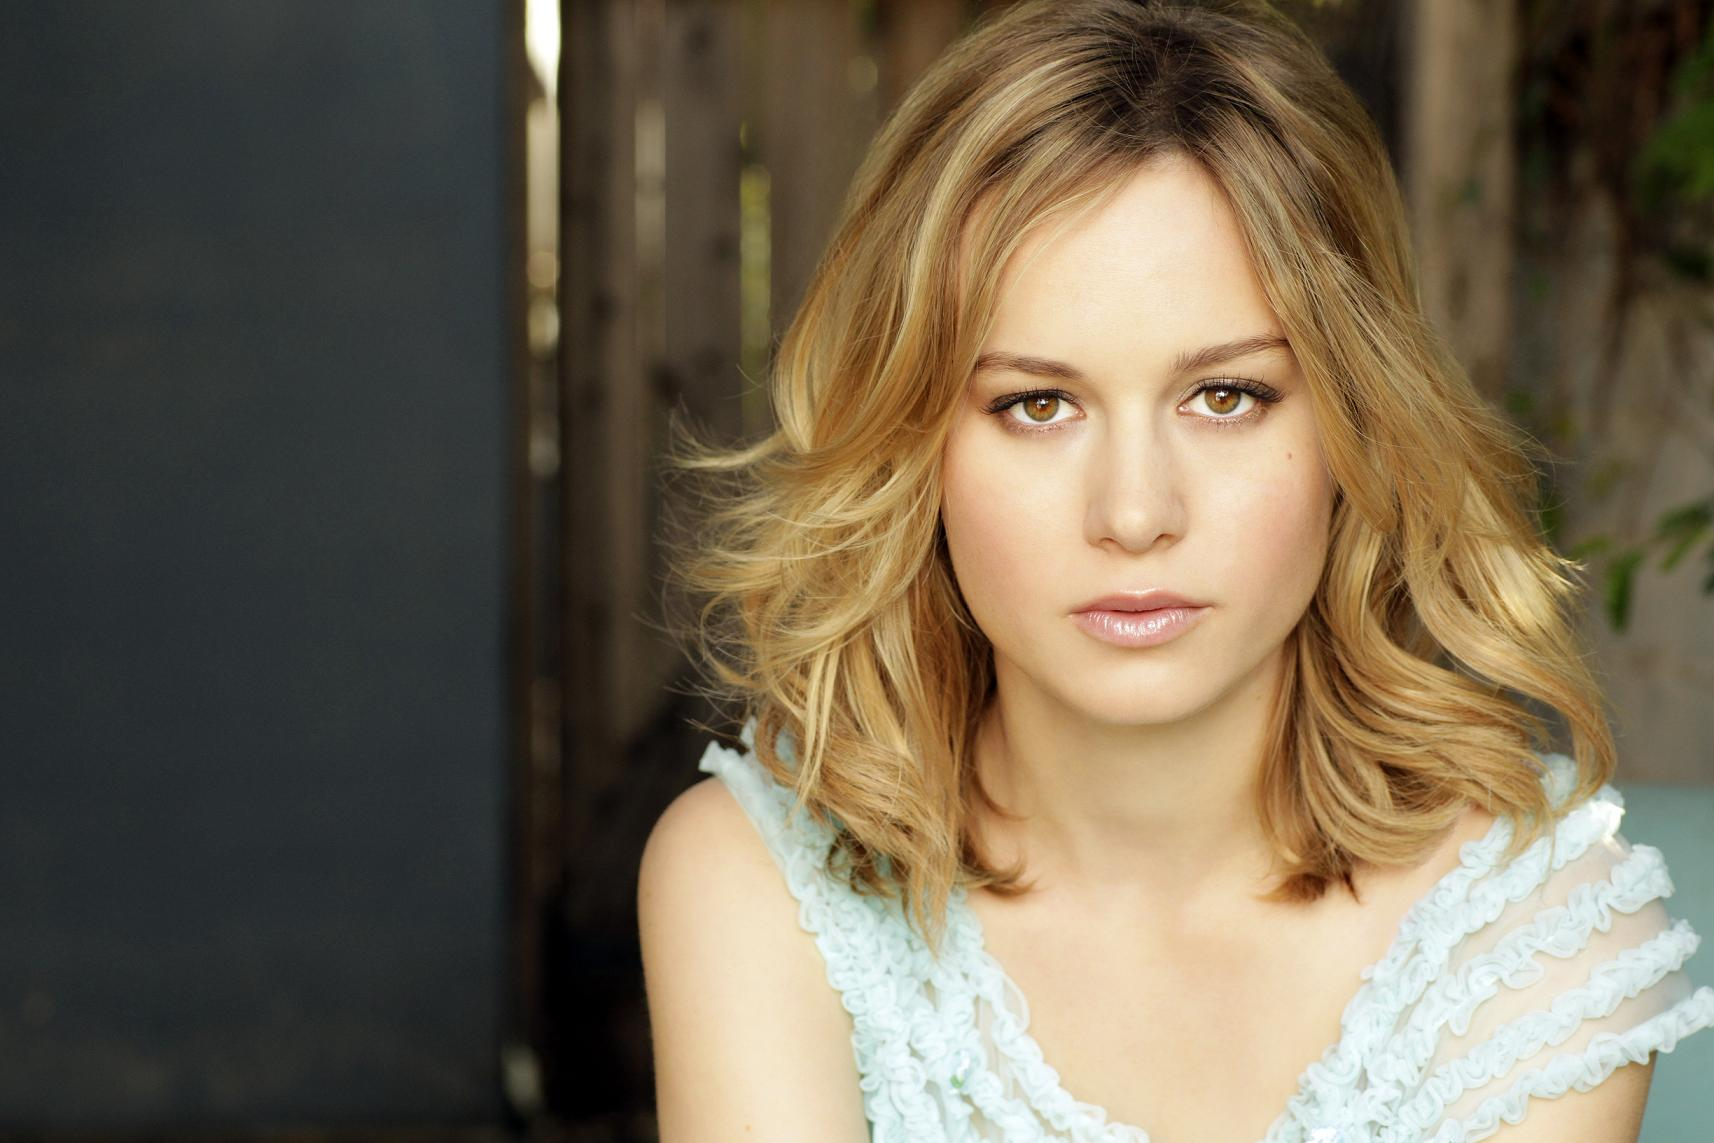 Brie Larson Wallpapers & Bio